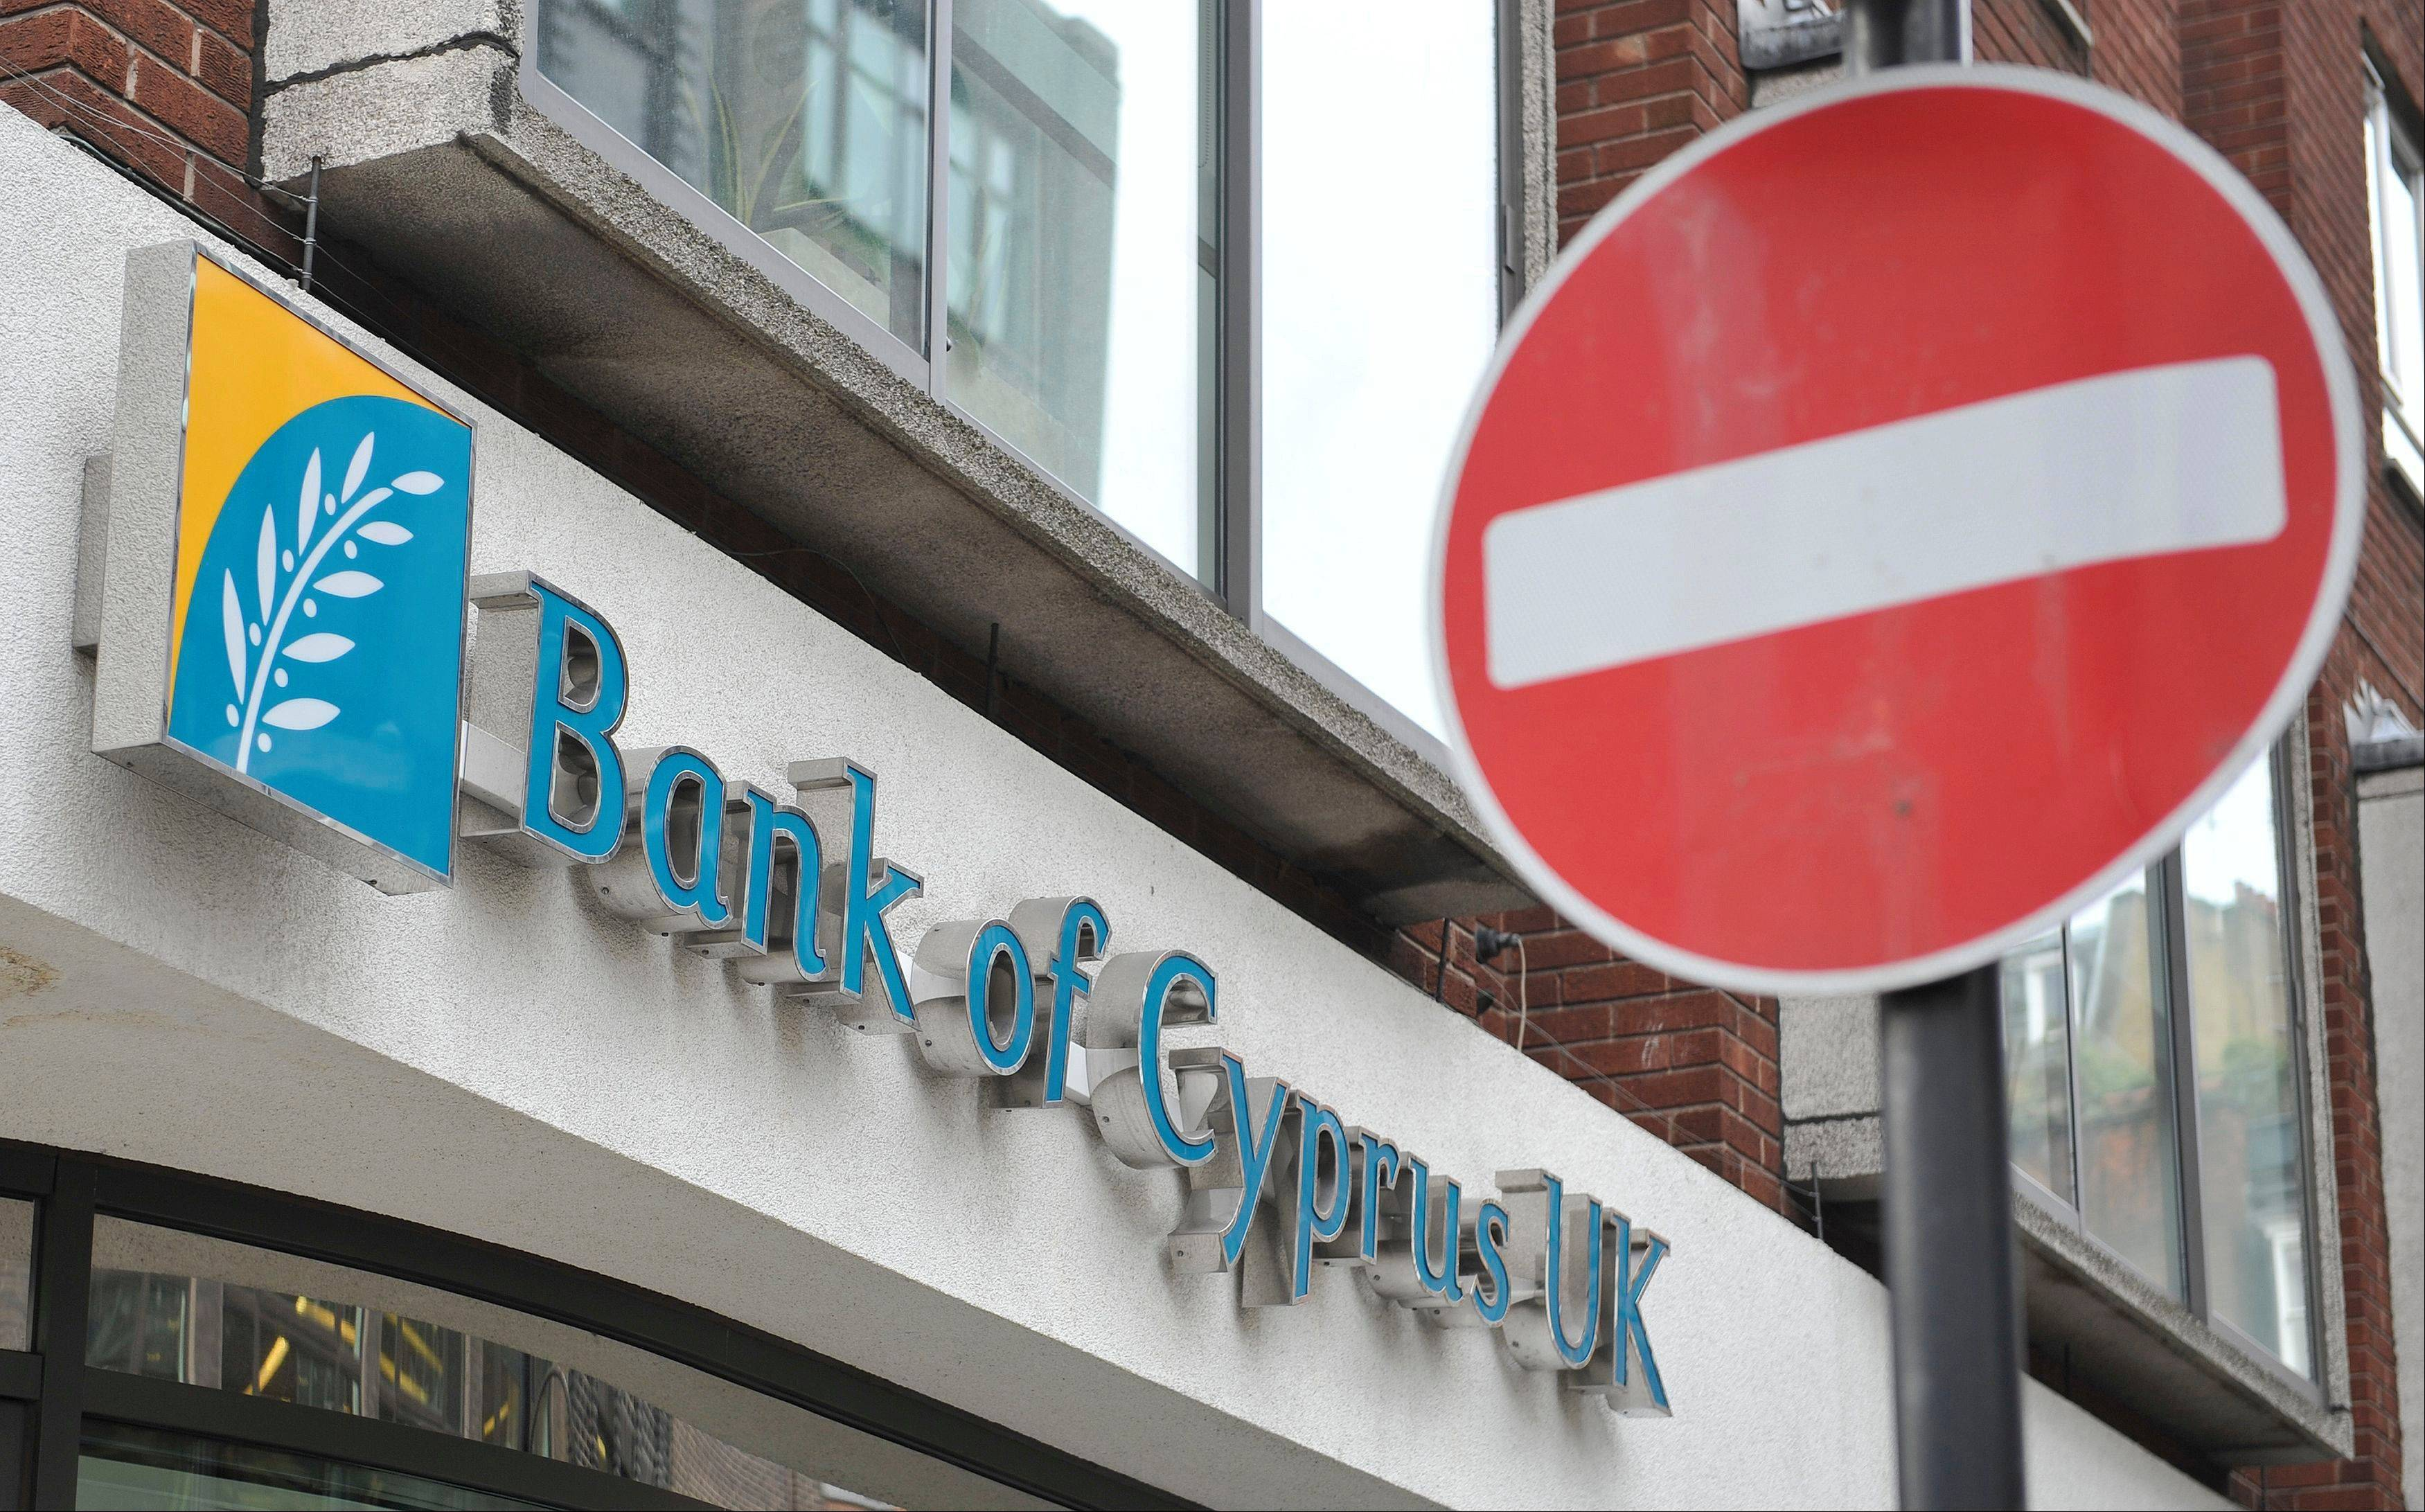 This is the Bank of Cyprus branch in London. Cyprus may agree to demanding that all bank customers pay a one-off levy on all bank deposits to save the country from bankruptcy.